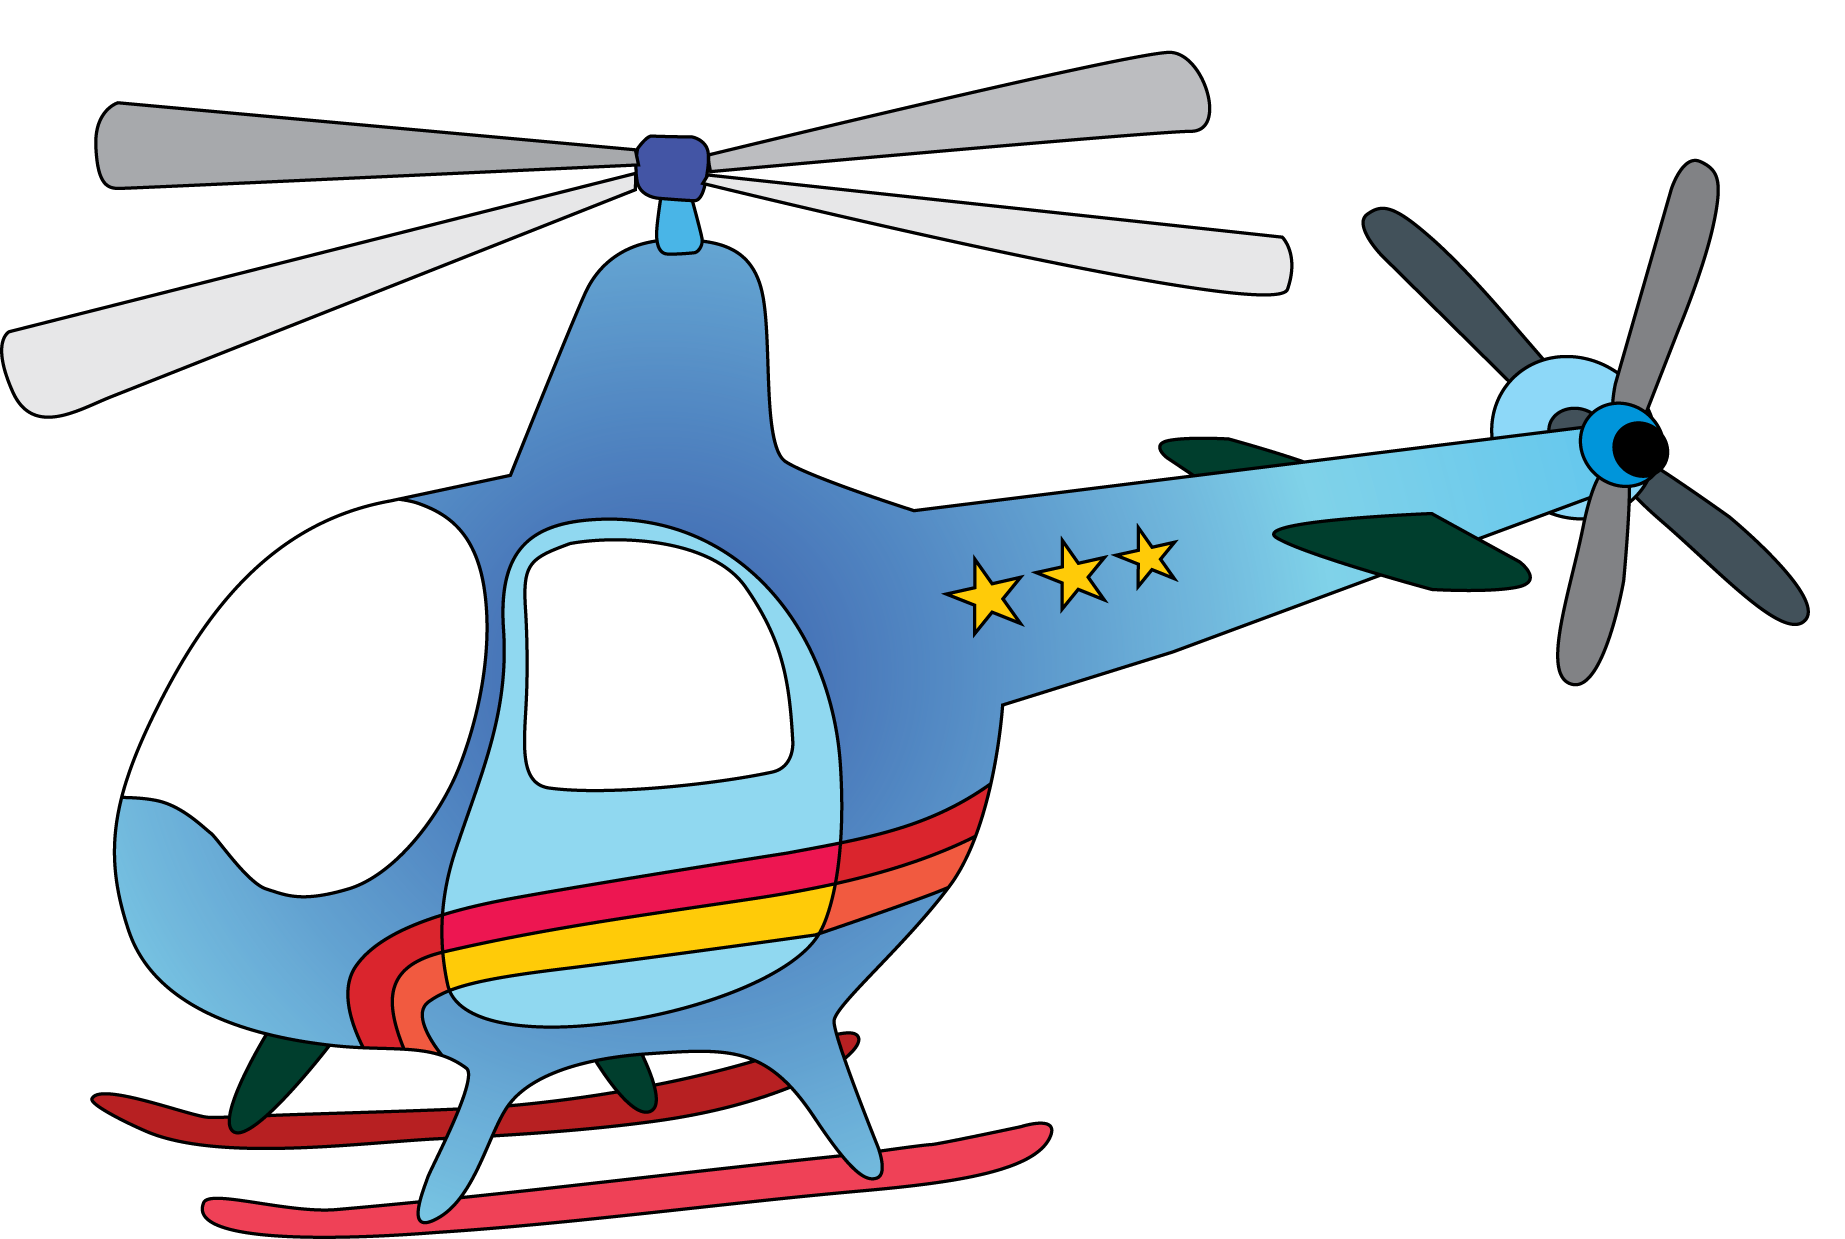 Helicopter Blades Clipart.